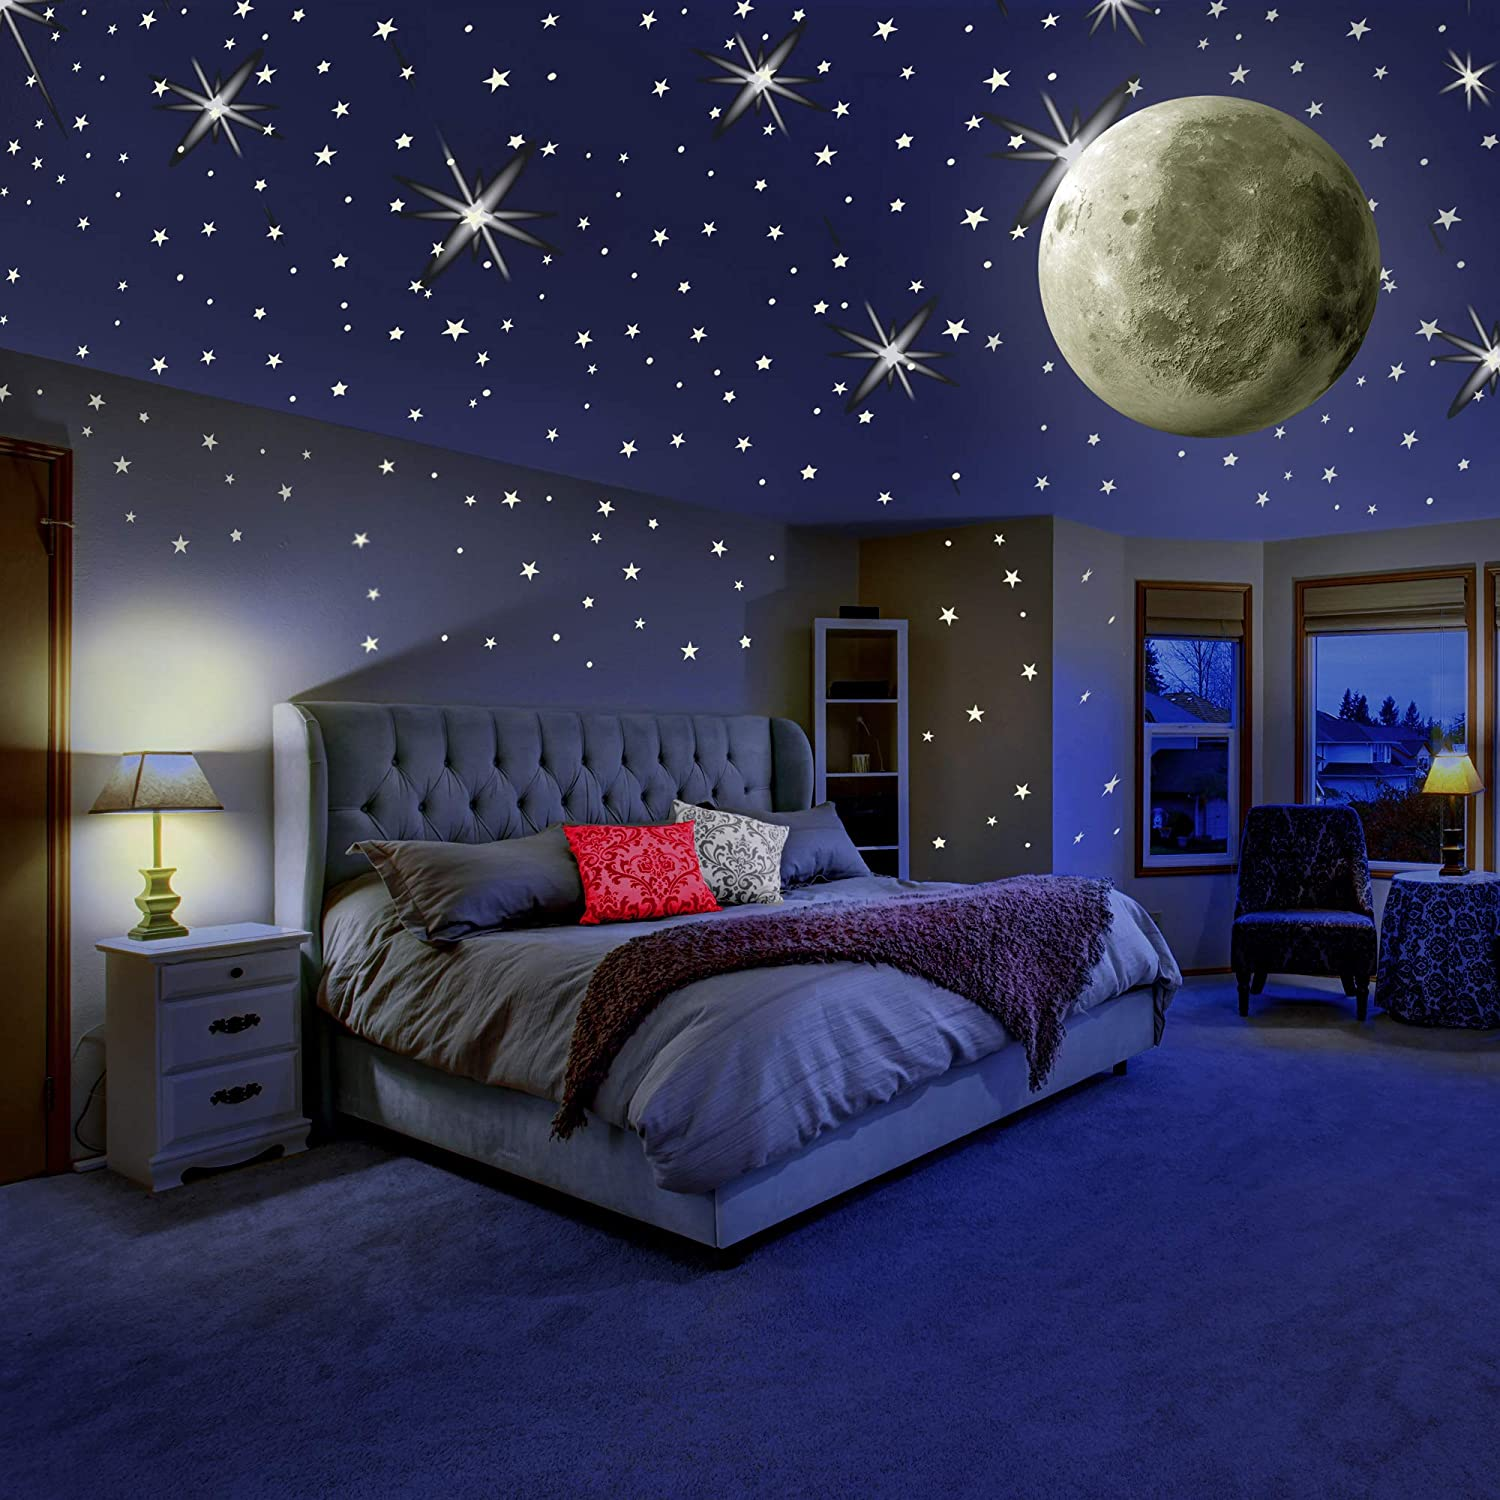 MAFOX Glow in The Dark Wall or Ceiling Stars with Moon Stickers – Luminous Decal Stickers for Simulated Moon Effect at Night – Ideal Kids Decor or Adults – Perfect Gift Kids Boys Girls MA-31